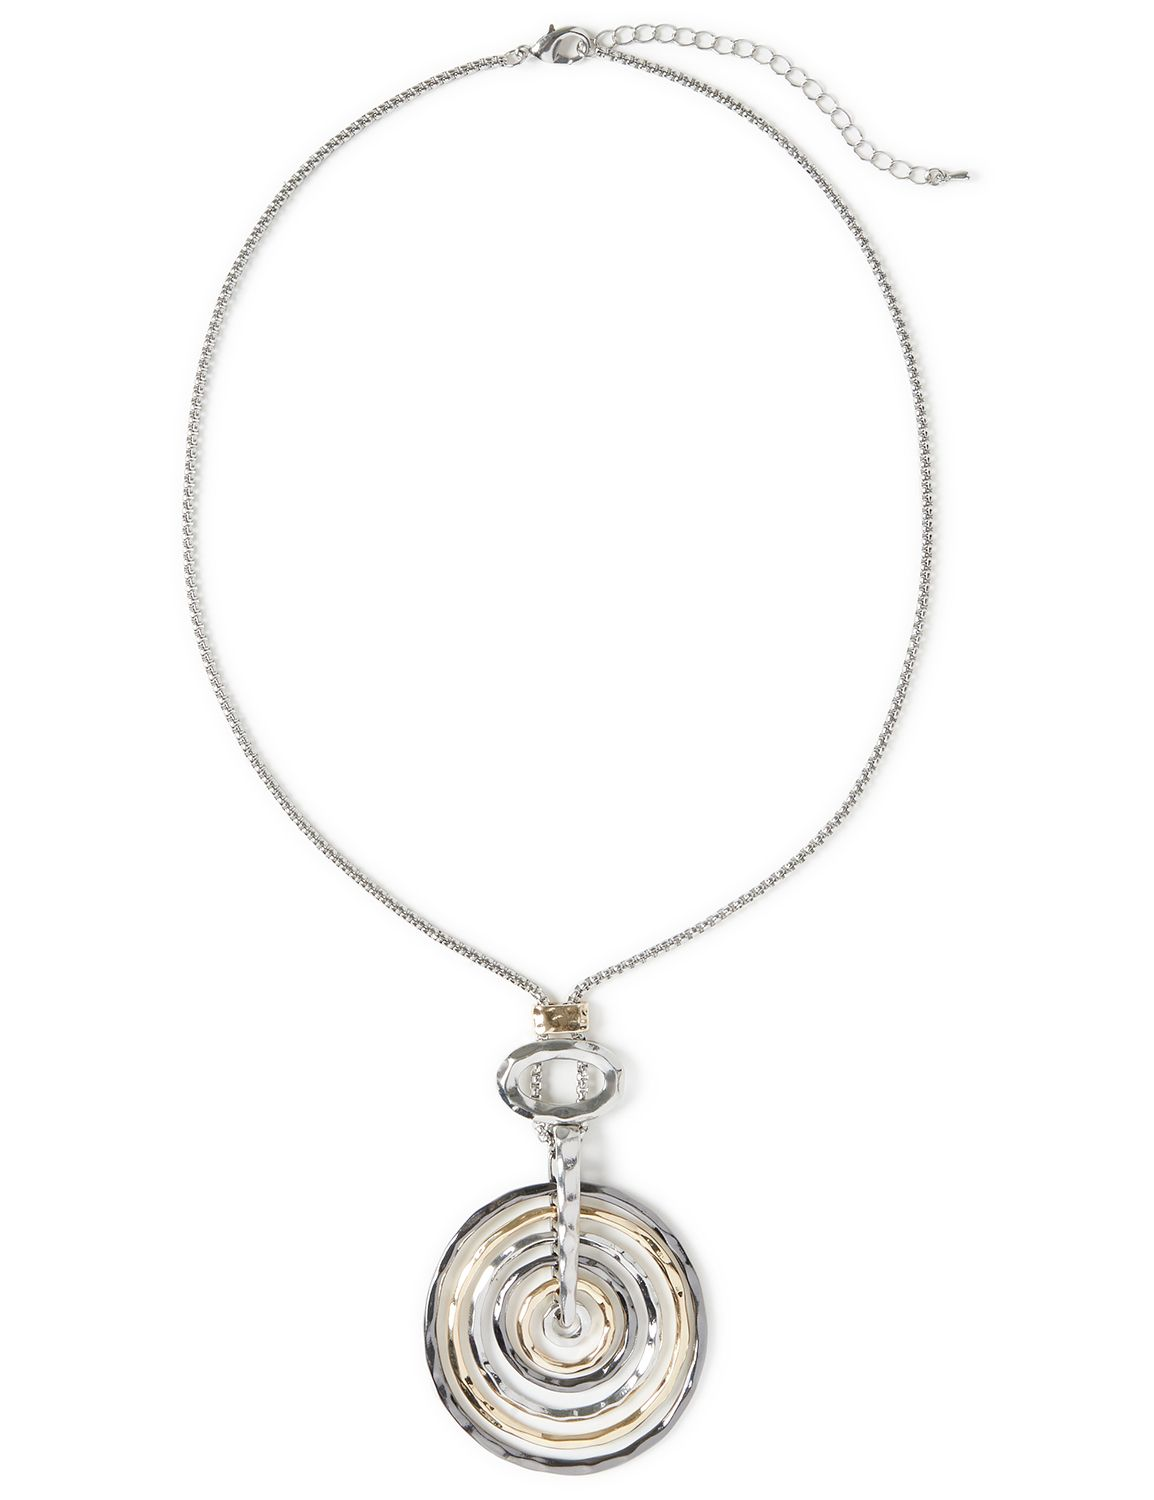 Concentric Pendant Necklace WU Short 6 ring pendant NK KT0717N2 MP-300099413